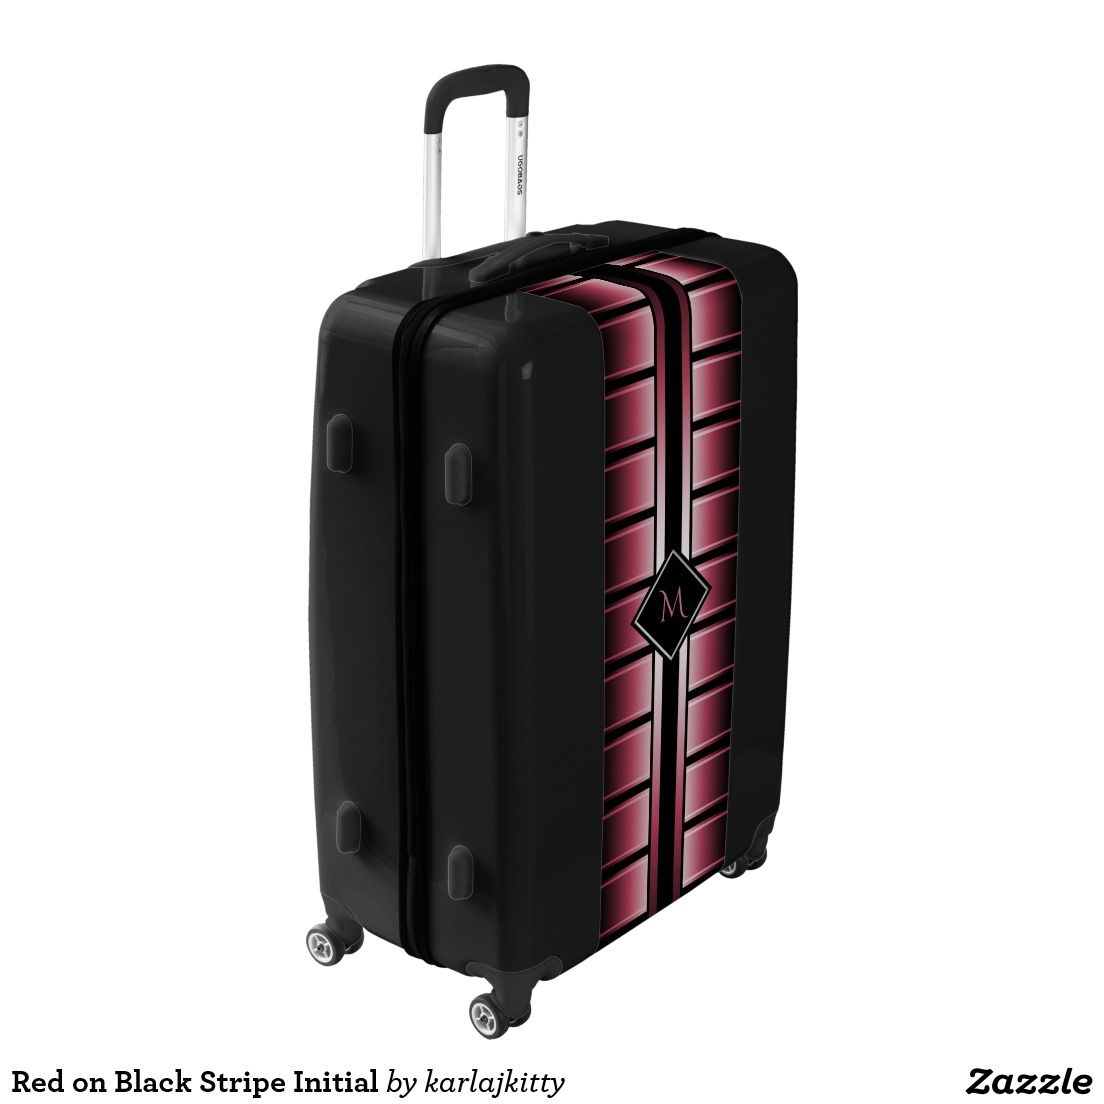 Red on Black Stripe Initial Luggage